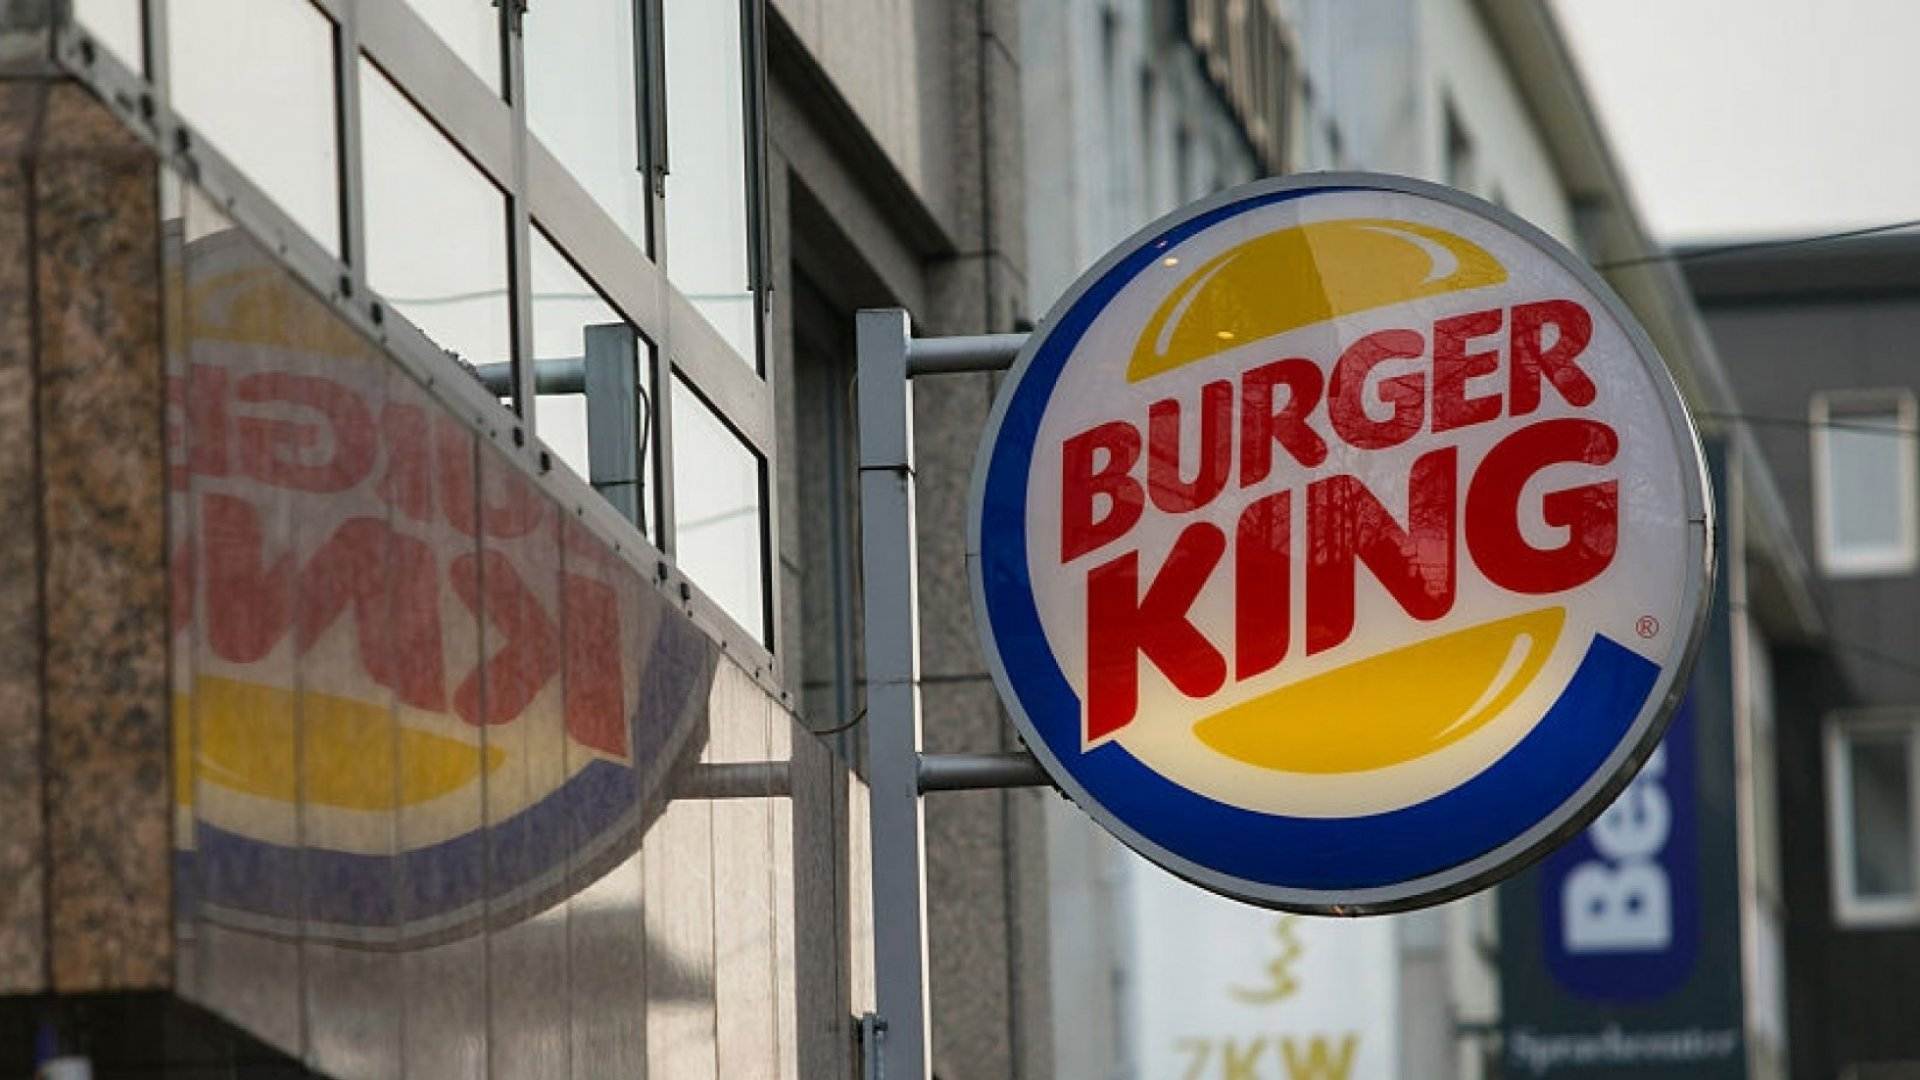 Burger King Just Made a Shocking Plea to Customers to Order From McDonald's. No, It's Not a Joke